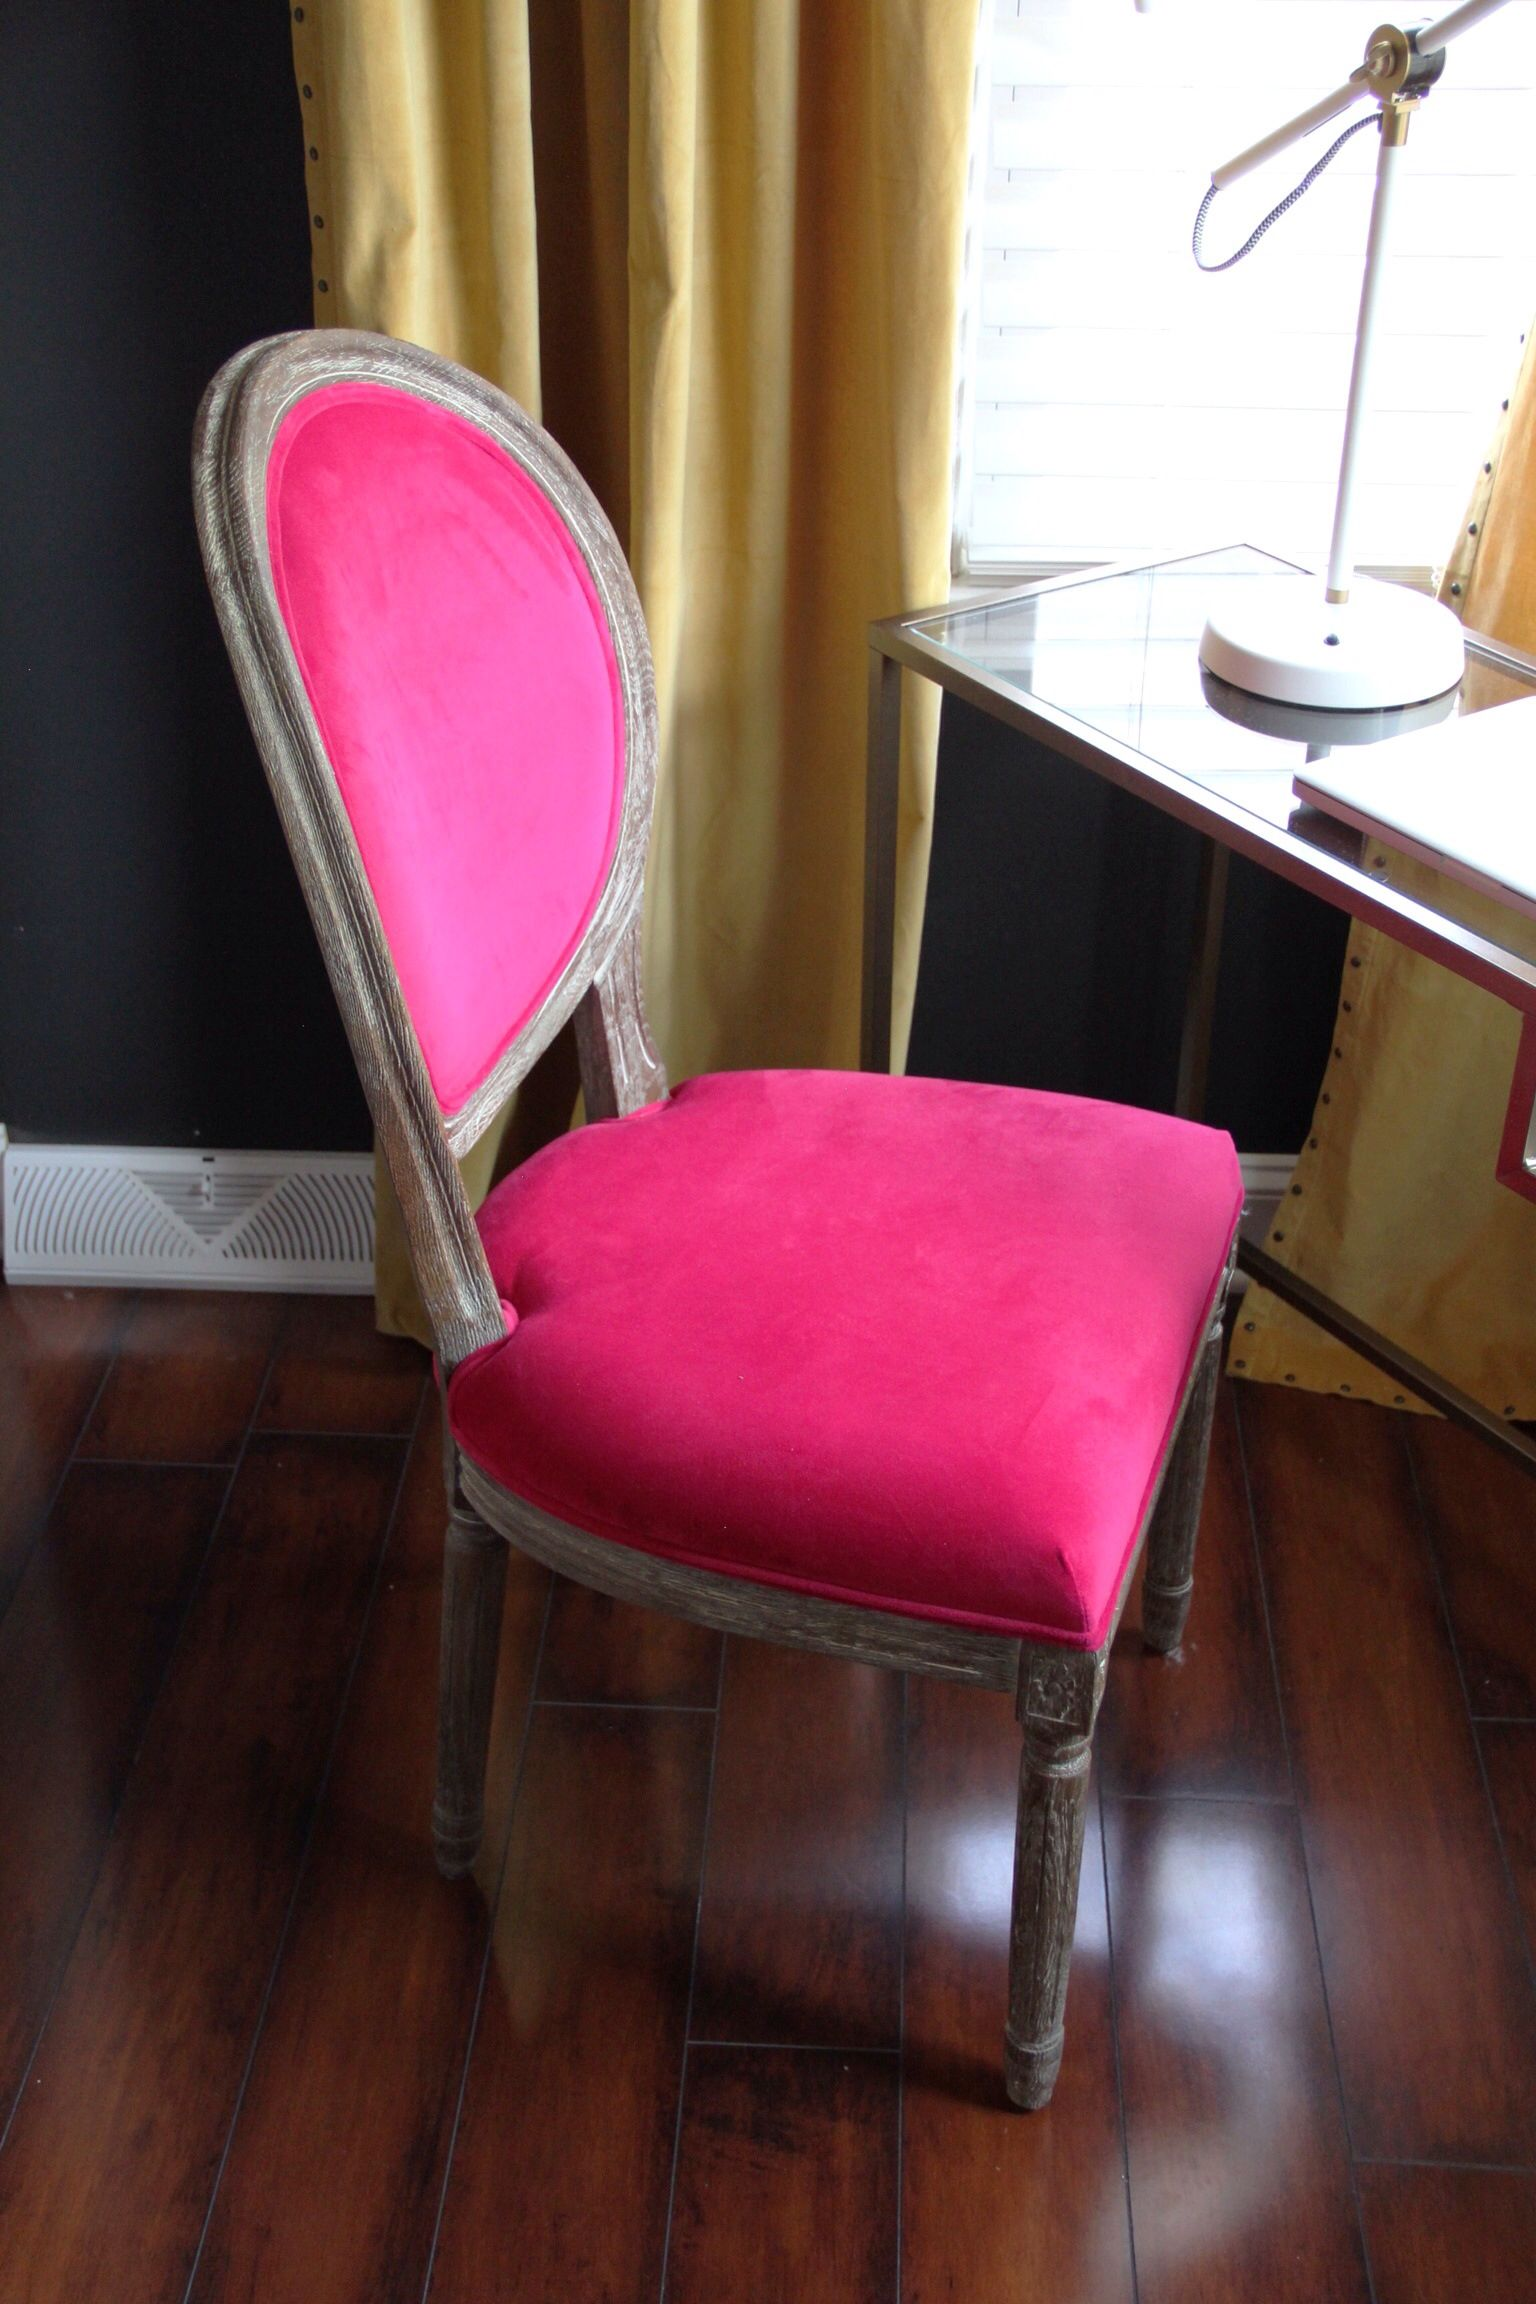 bedroom chair pink velvet chairs for party tables dining from cost plus world market i am